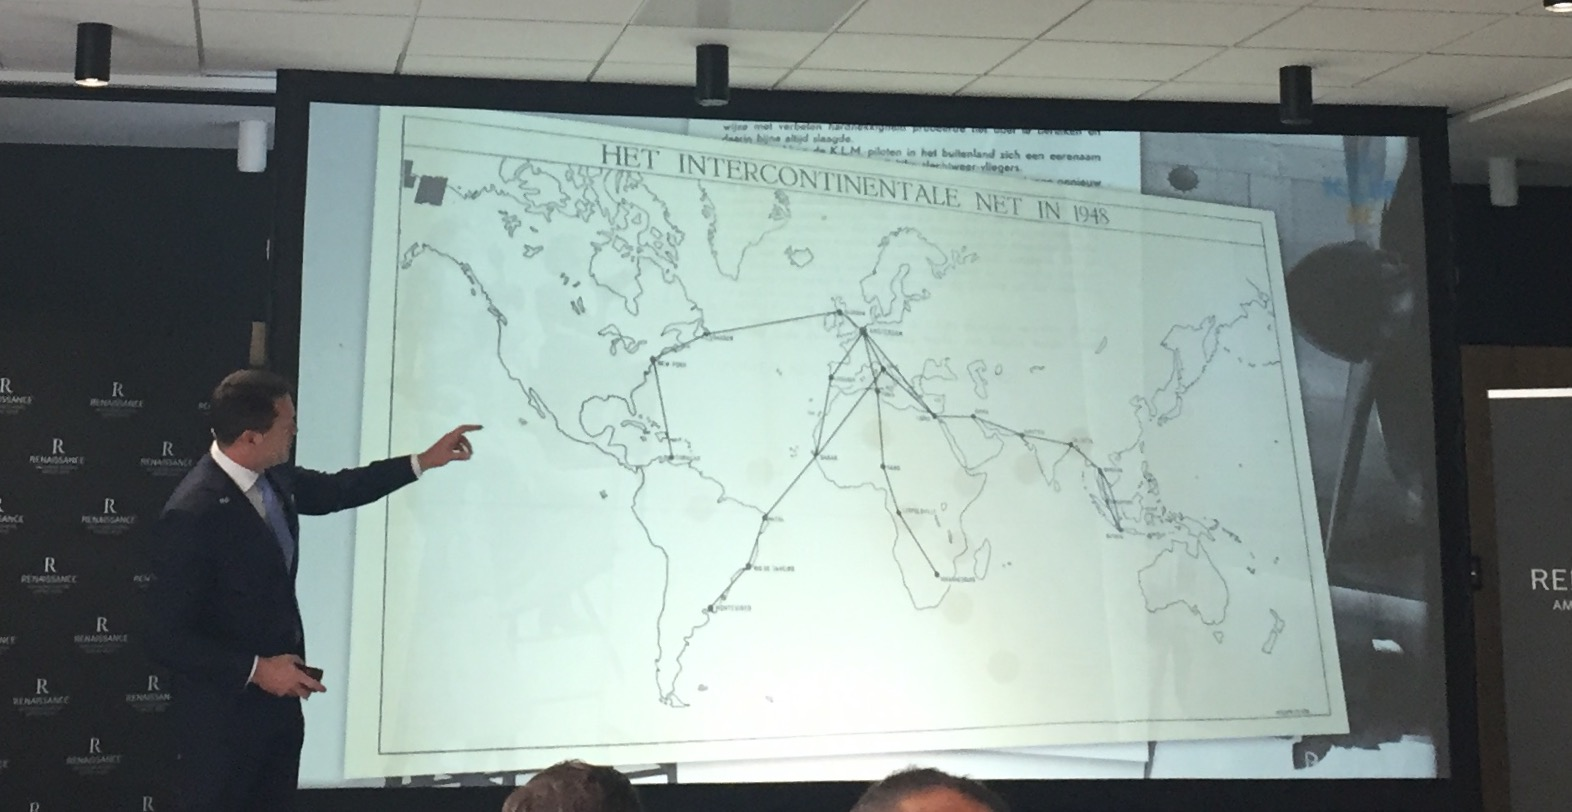 KLM CEO, Pieter Elbers shows the airline's route network in the early years , when it was focus in keping open the links between The Netherlands and its colonies at the time.